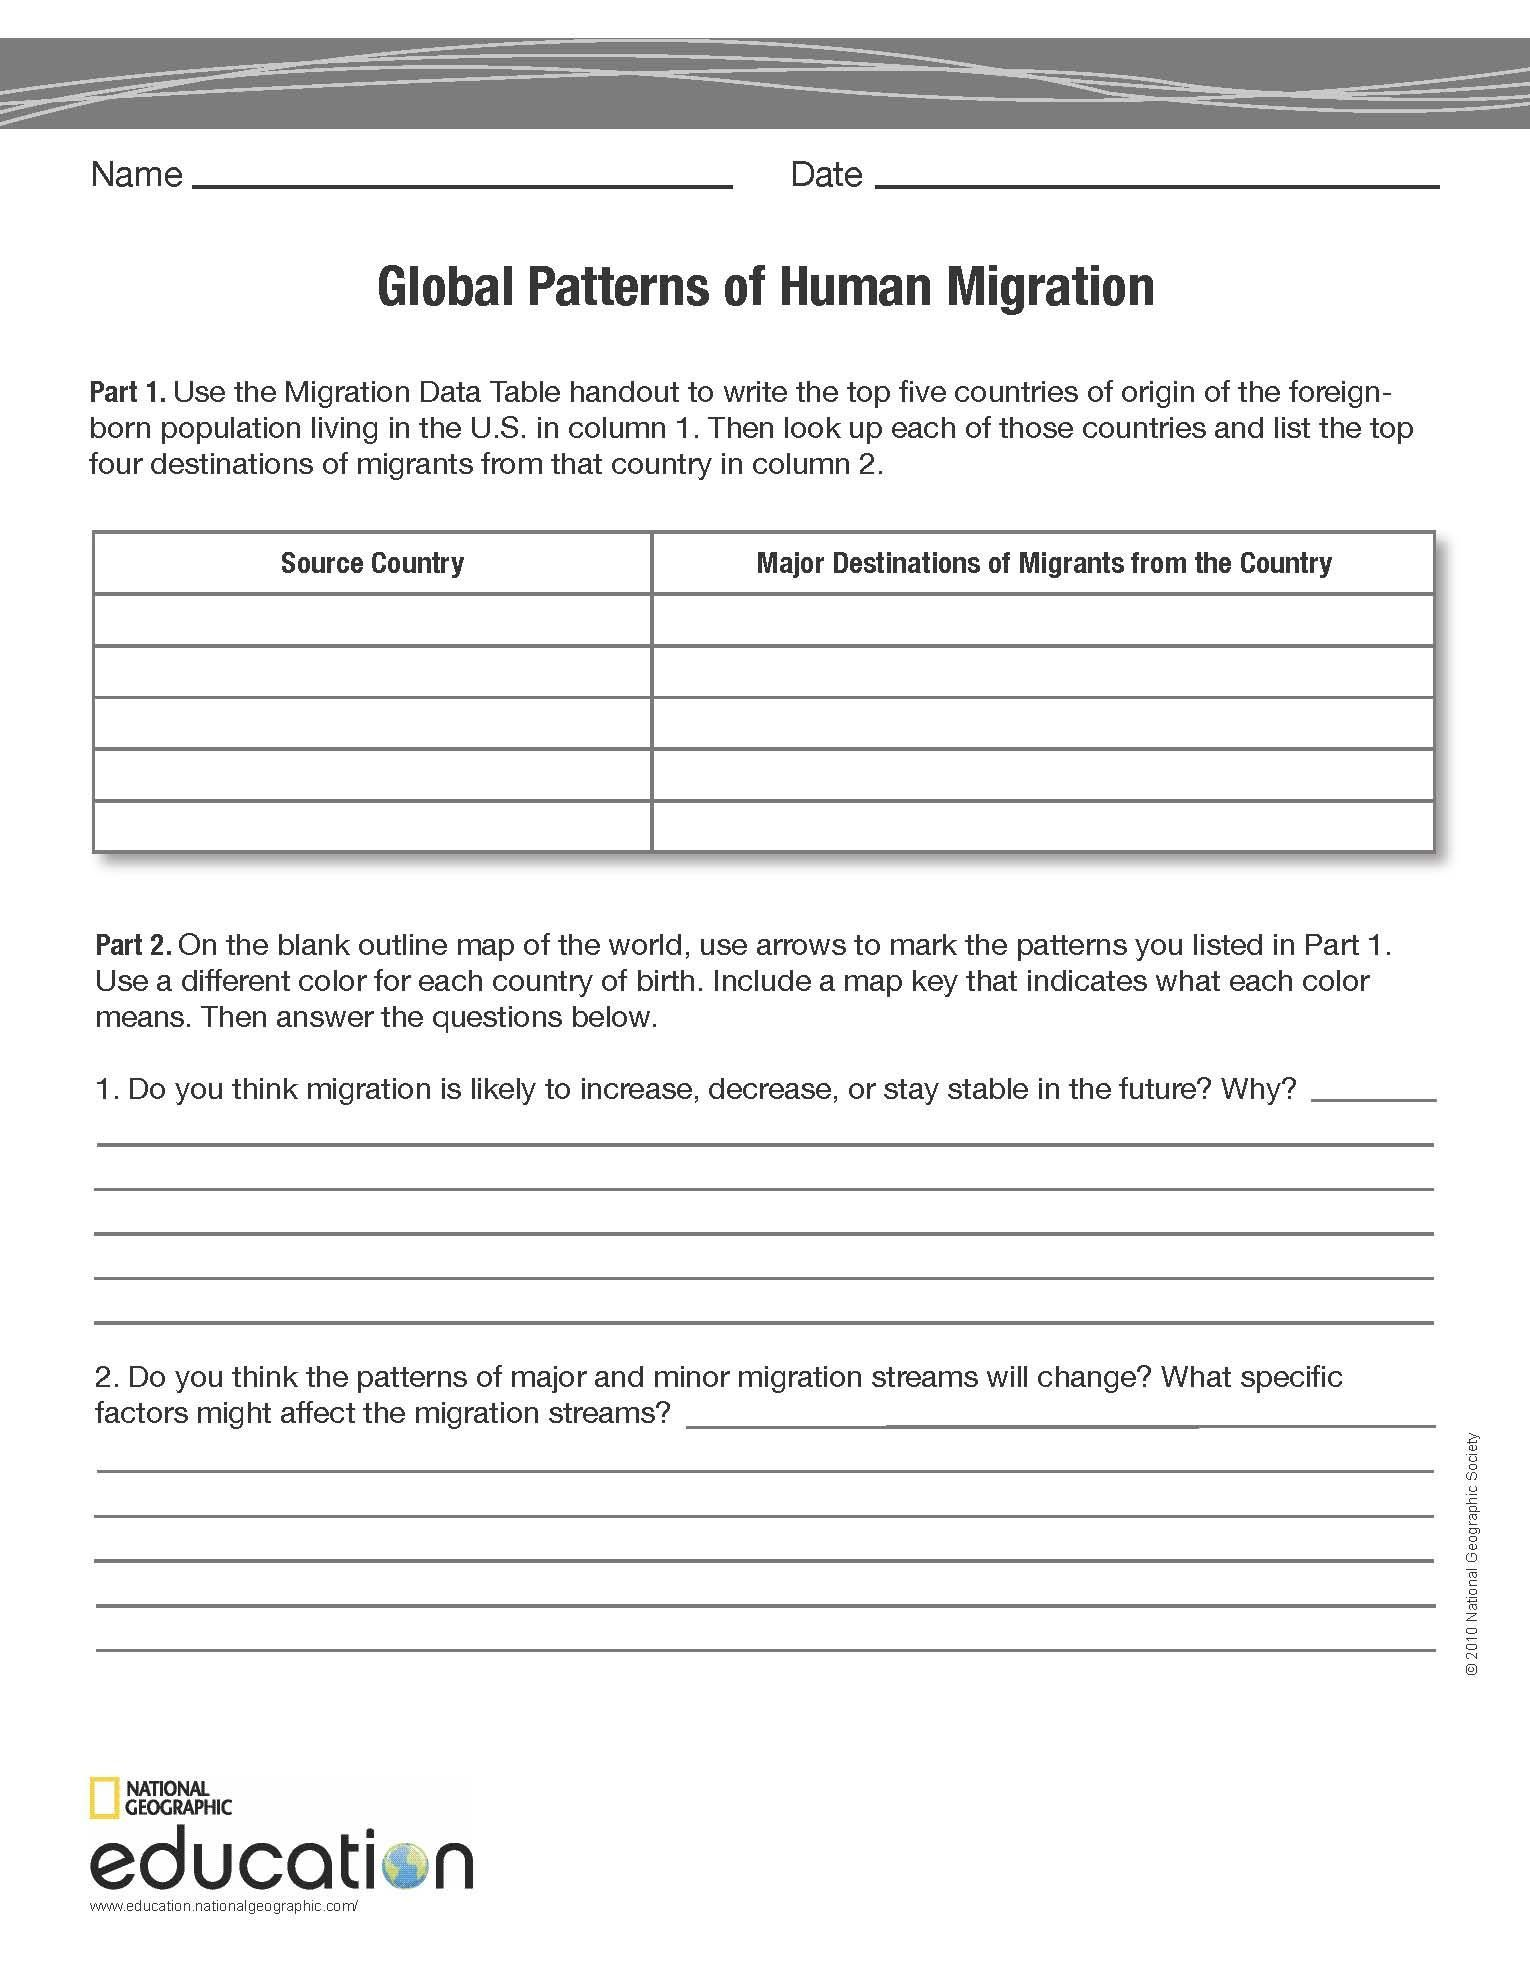 global patterns of human migration national geographic society geography pinterest. Black Bedroom Furniture Sets. Home Design Ideas